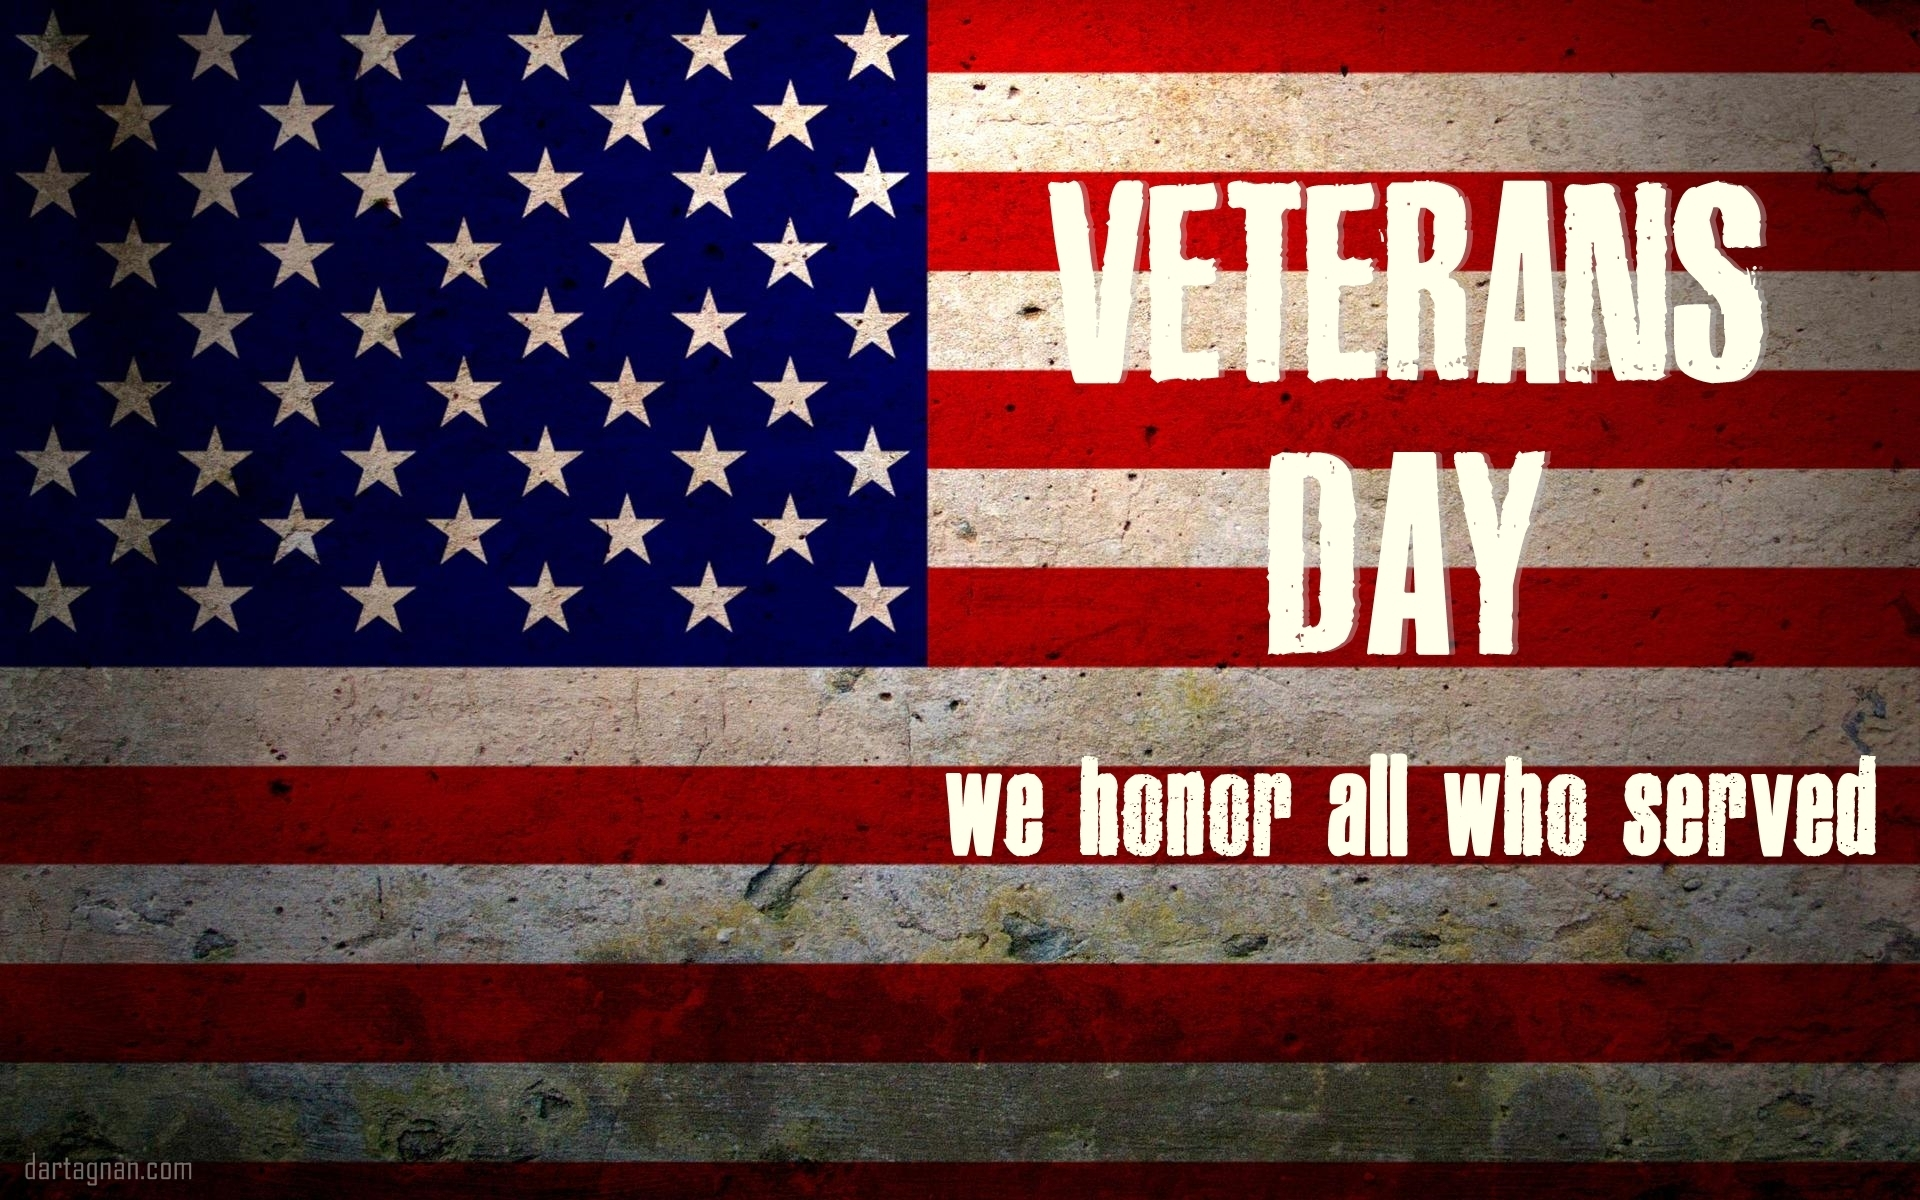 10 Latest Veterans Day 2015 Wallpaper FULL HD 1080p For PC Background